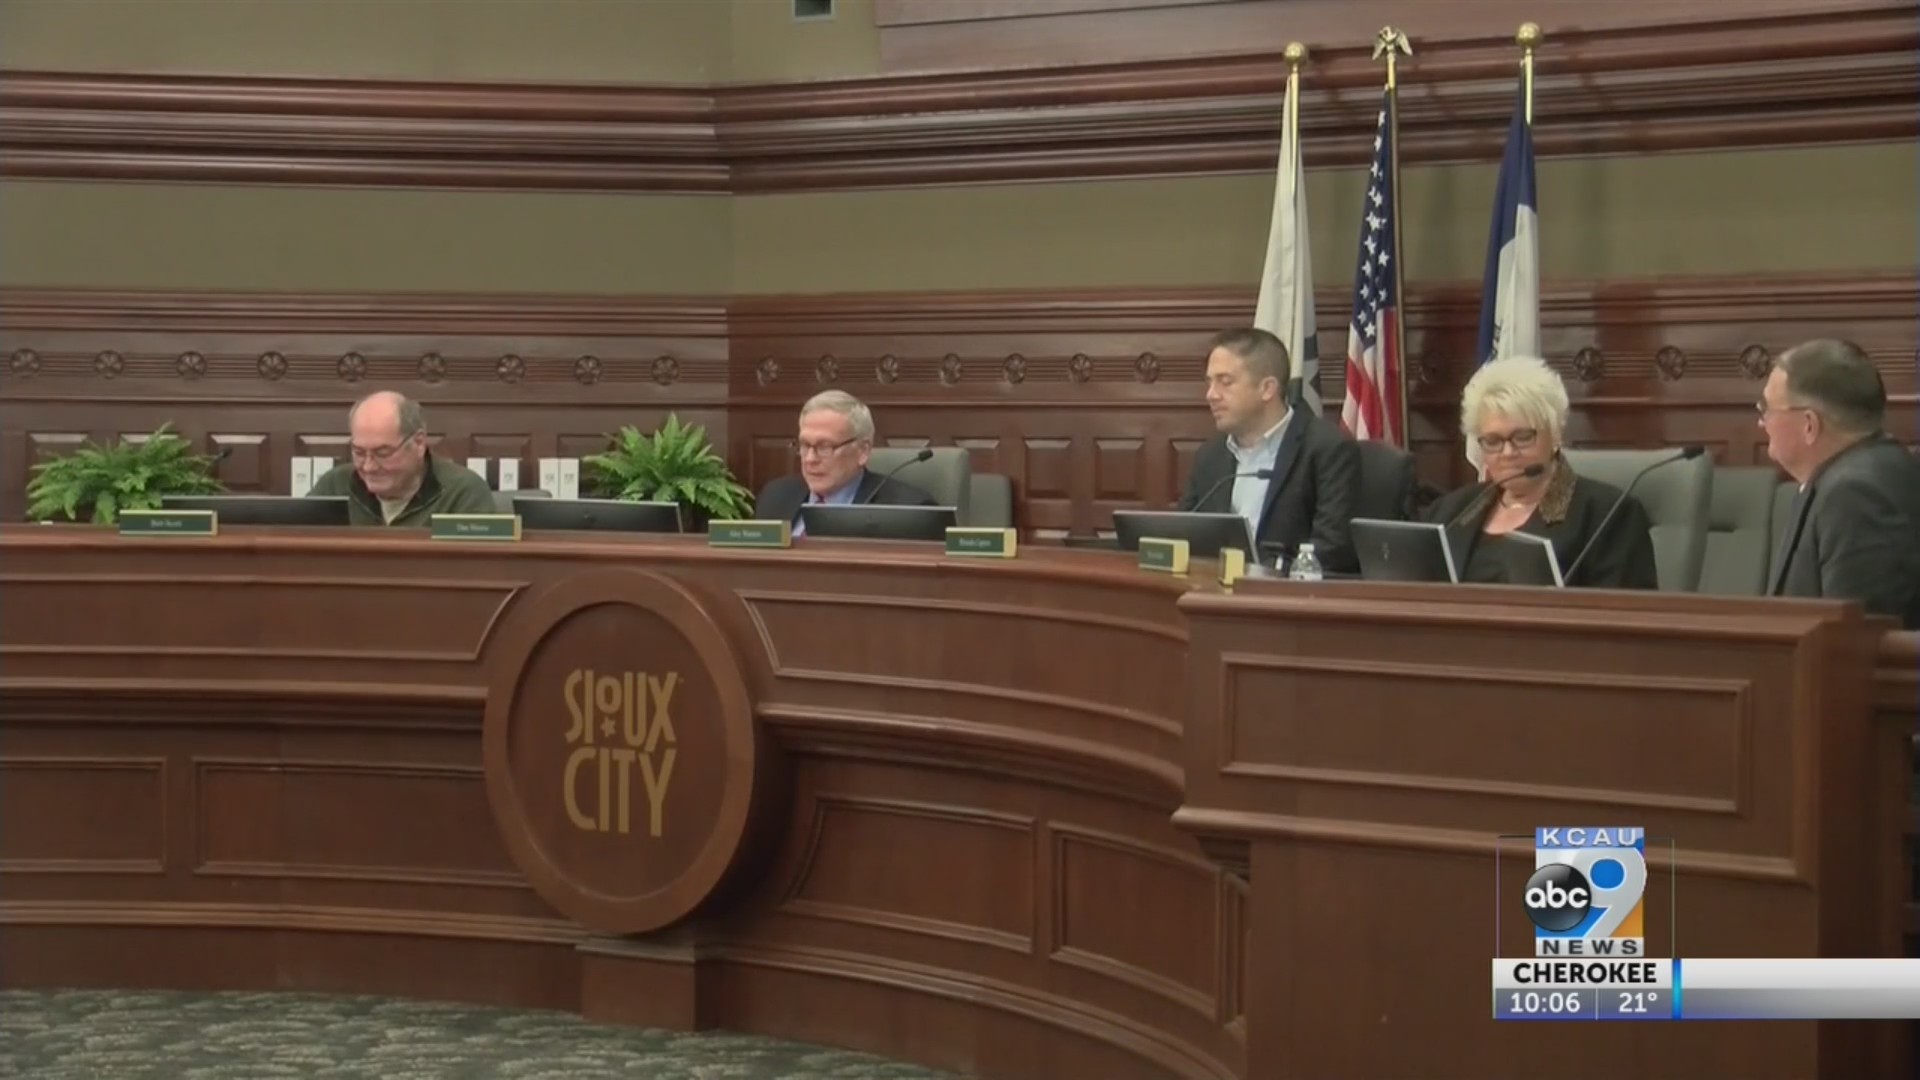 City reaches deal with Verizon